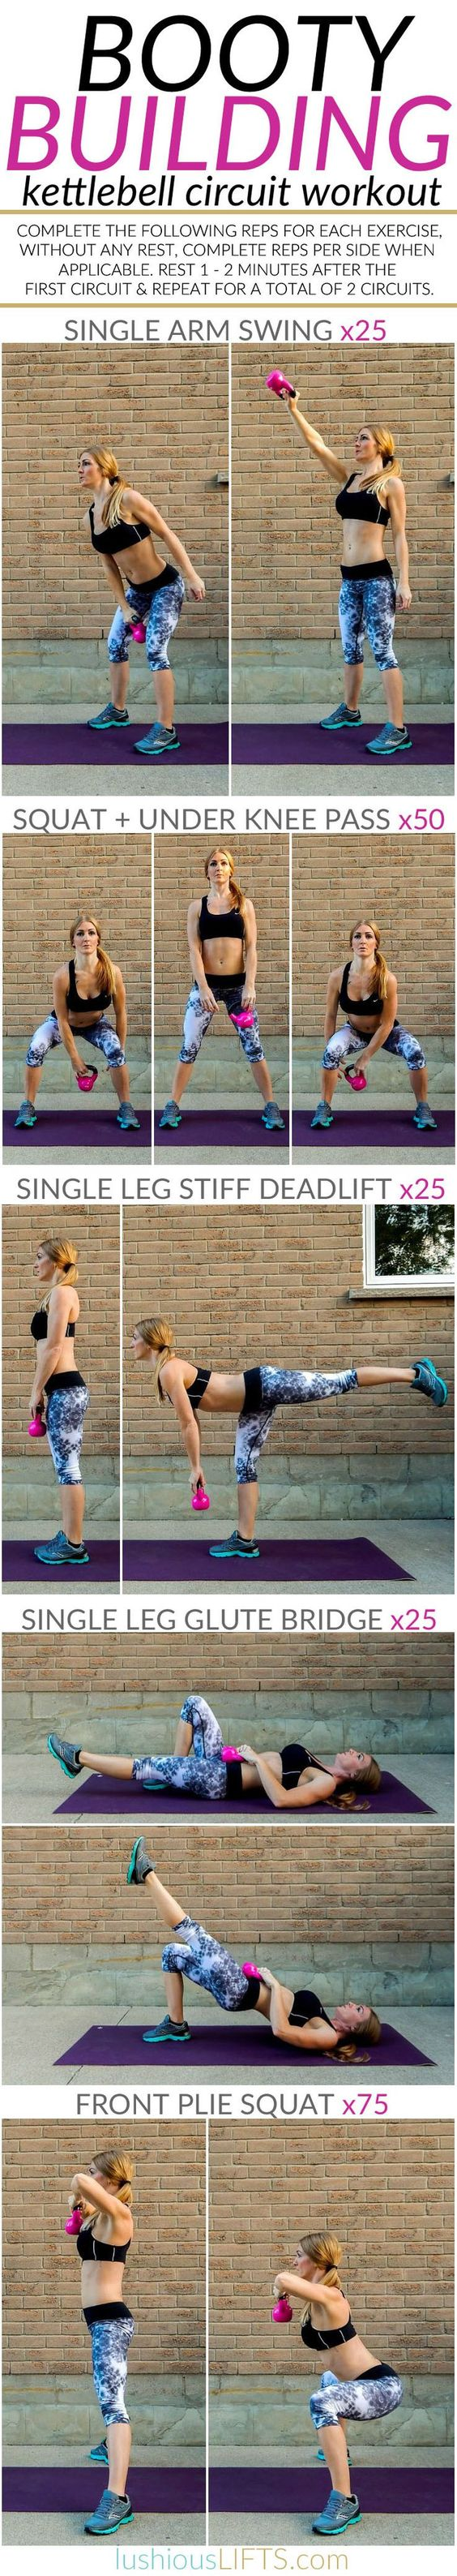 31 Killer Kettle Bell Workouts That Will Burn Body Fat Like Crazy Hour Circuit Tabata Hiit Pinterest Booty Building Workout